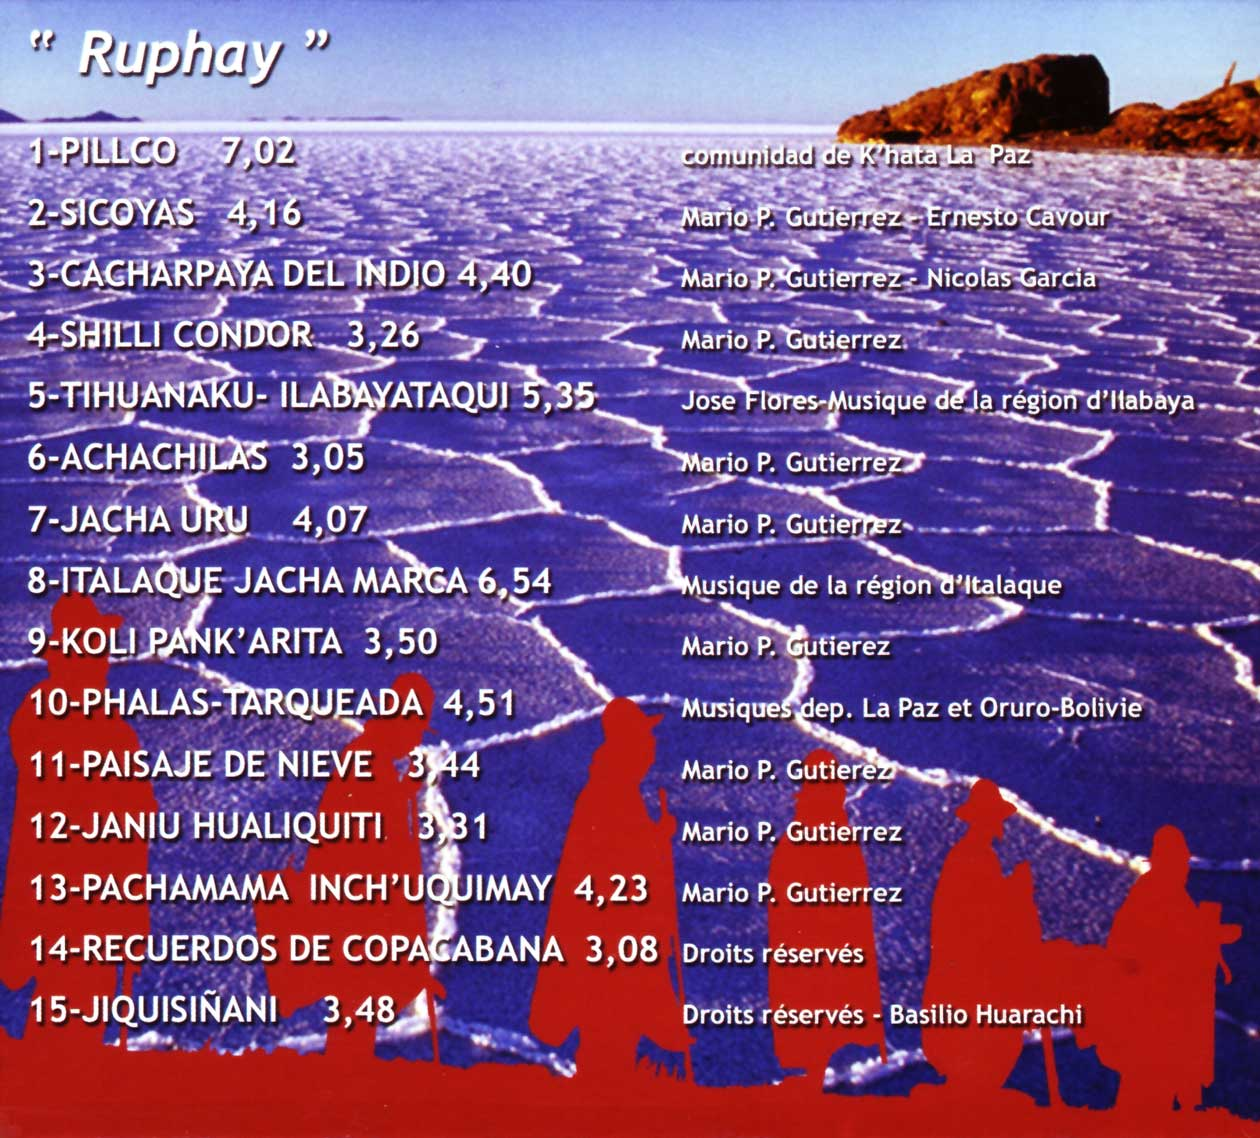 Ruphay - Musique et Tradition des Andes 1968 – 2008